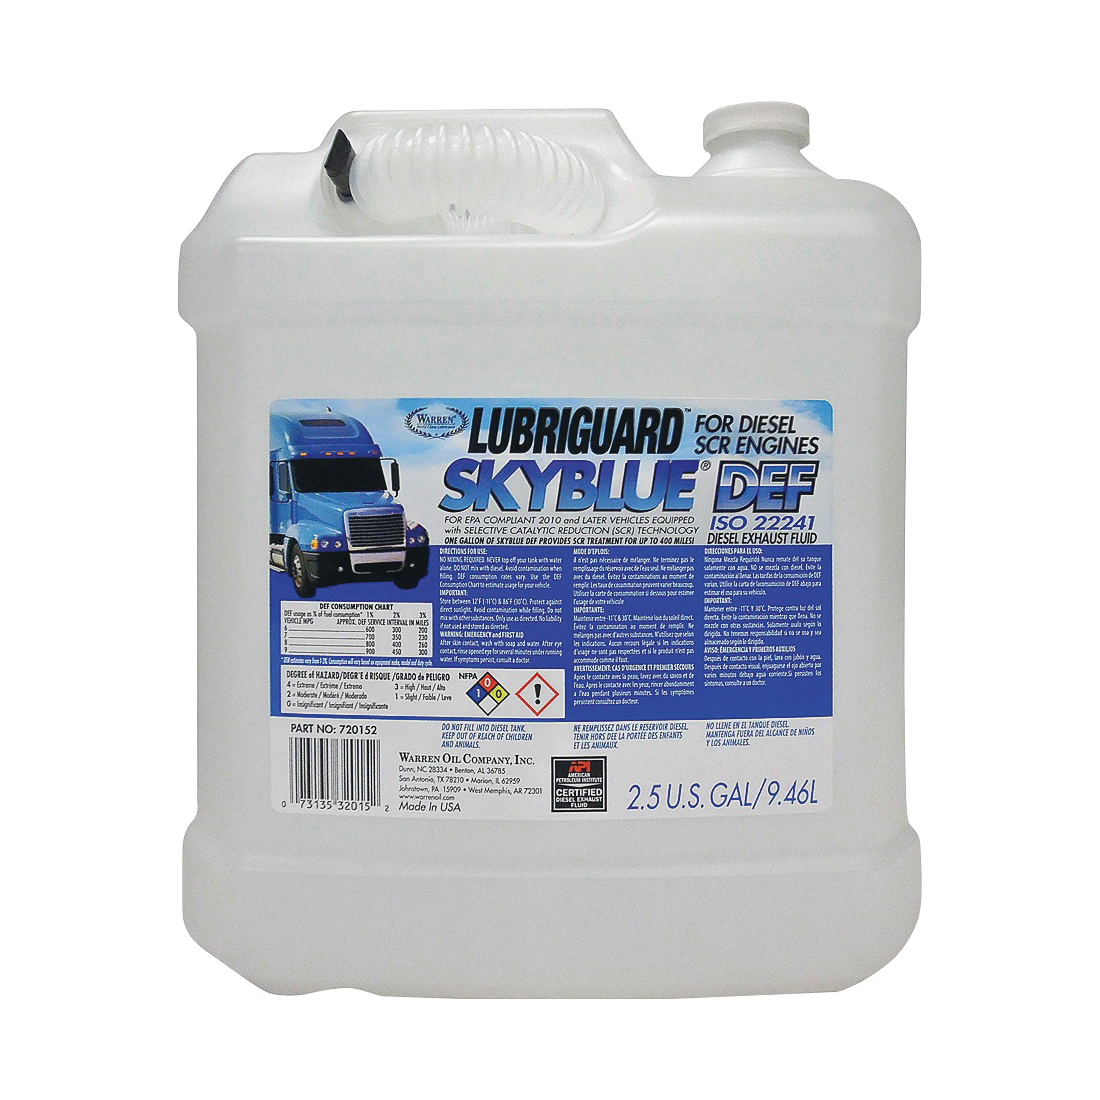 Picture of Lubriguard 720152 Fuel Additive Diesel, 2.5 gal Package